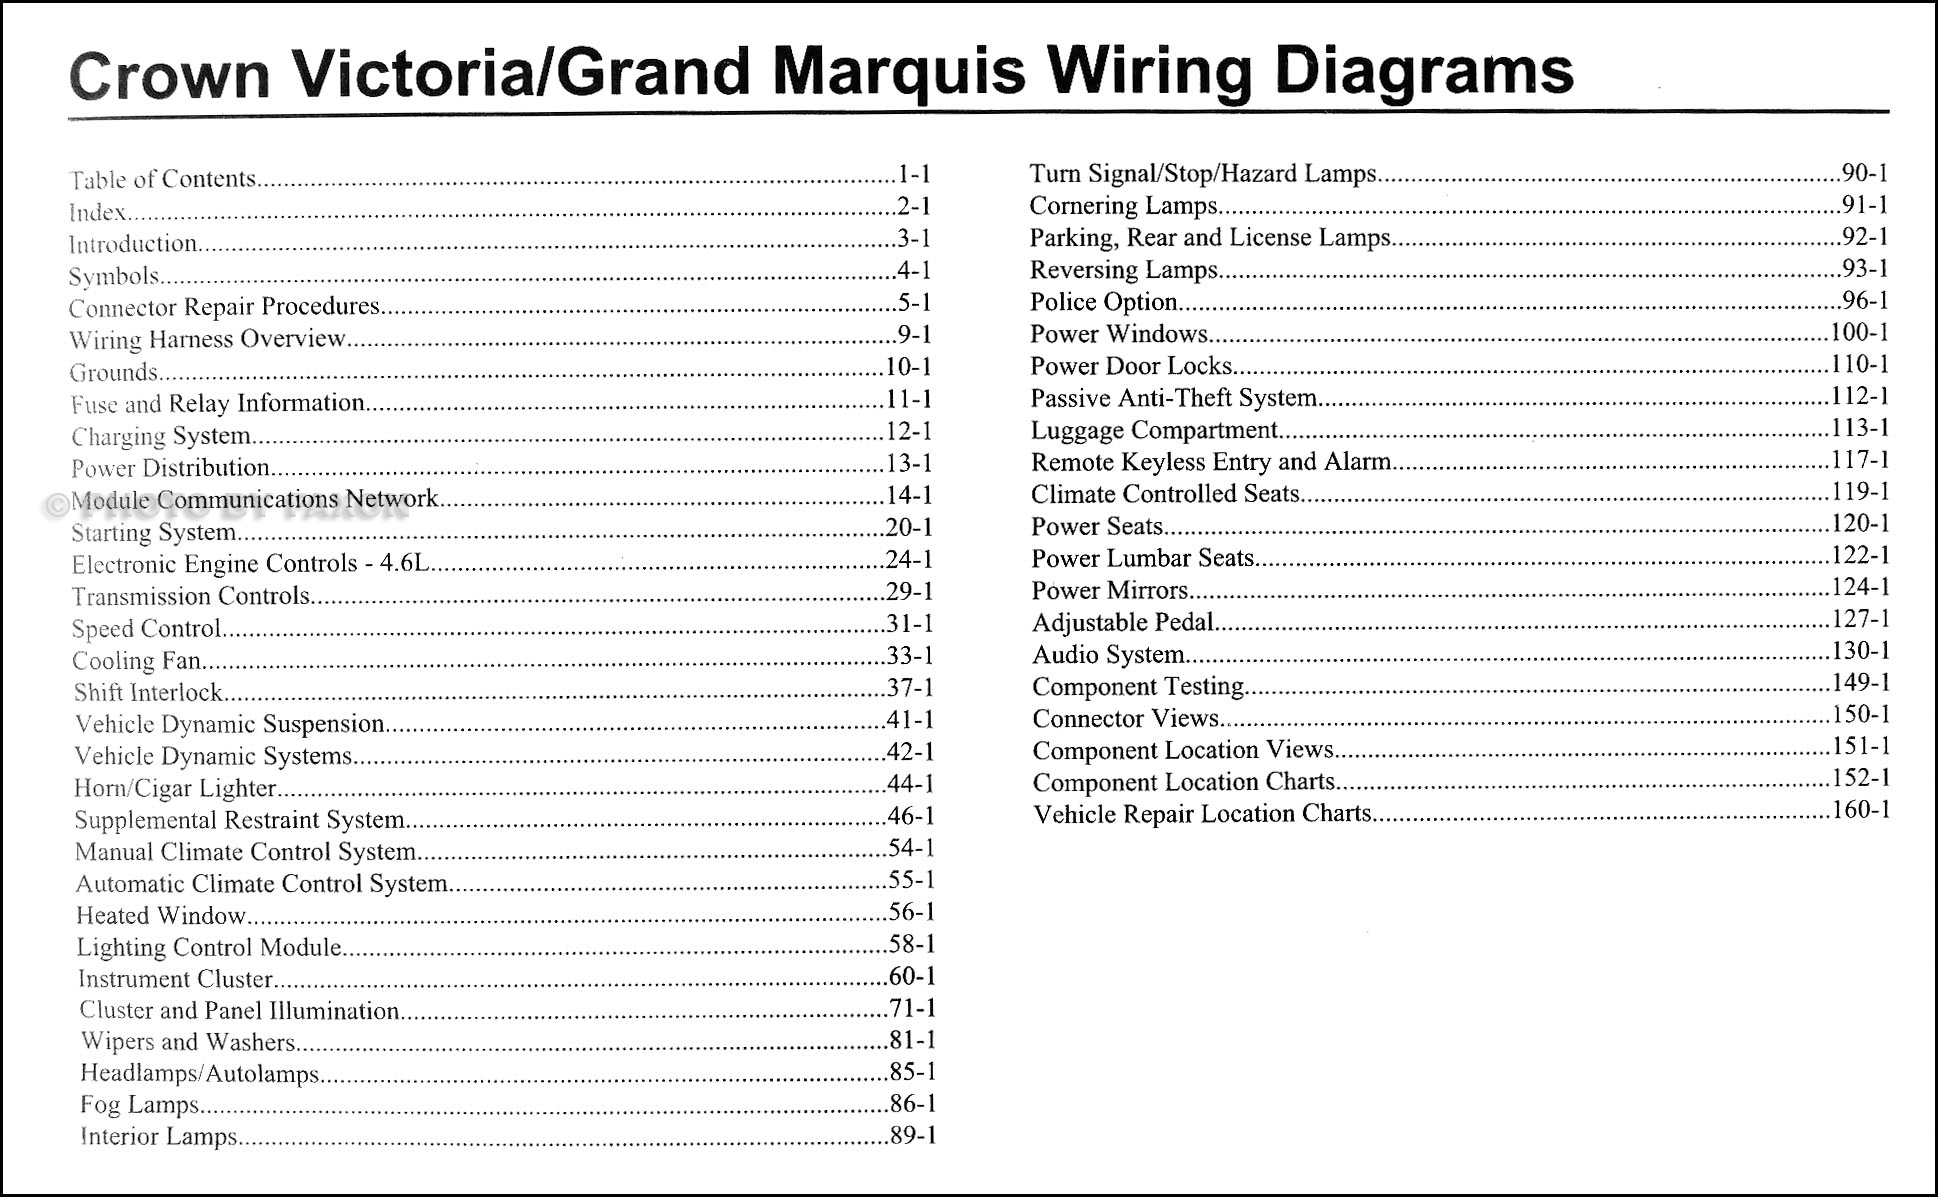 2009FordCrownVictoriaOWD TOC 98 grand marquis wiring diagram f450 wiring diagram \u2022 wiring 1996 mercury grand marquis fuse box diagram at honlapkeszites.co